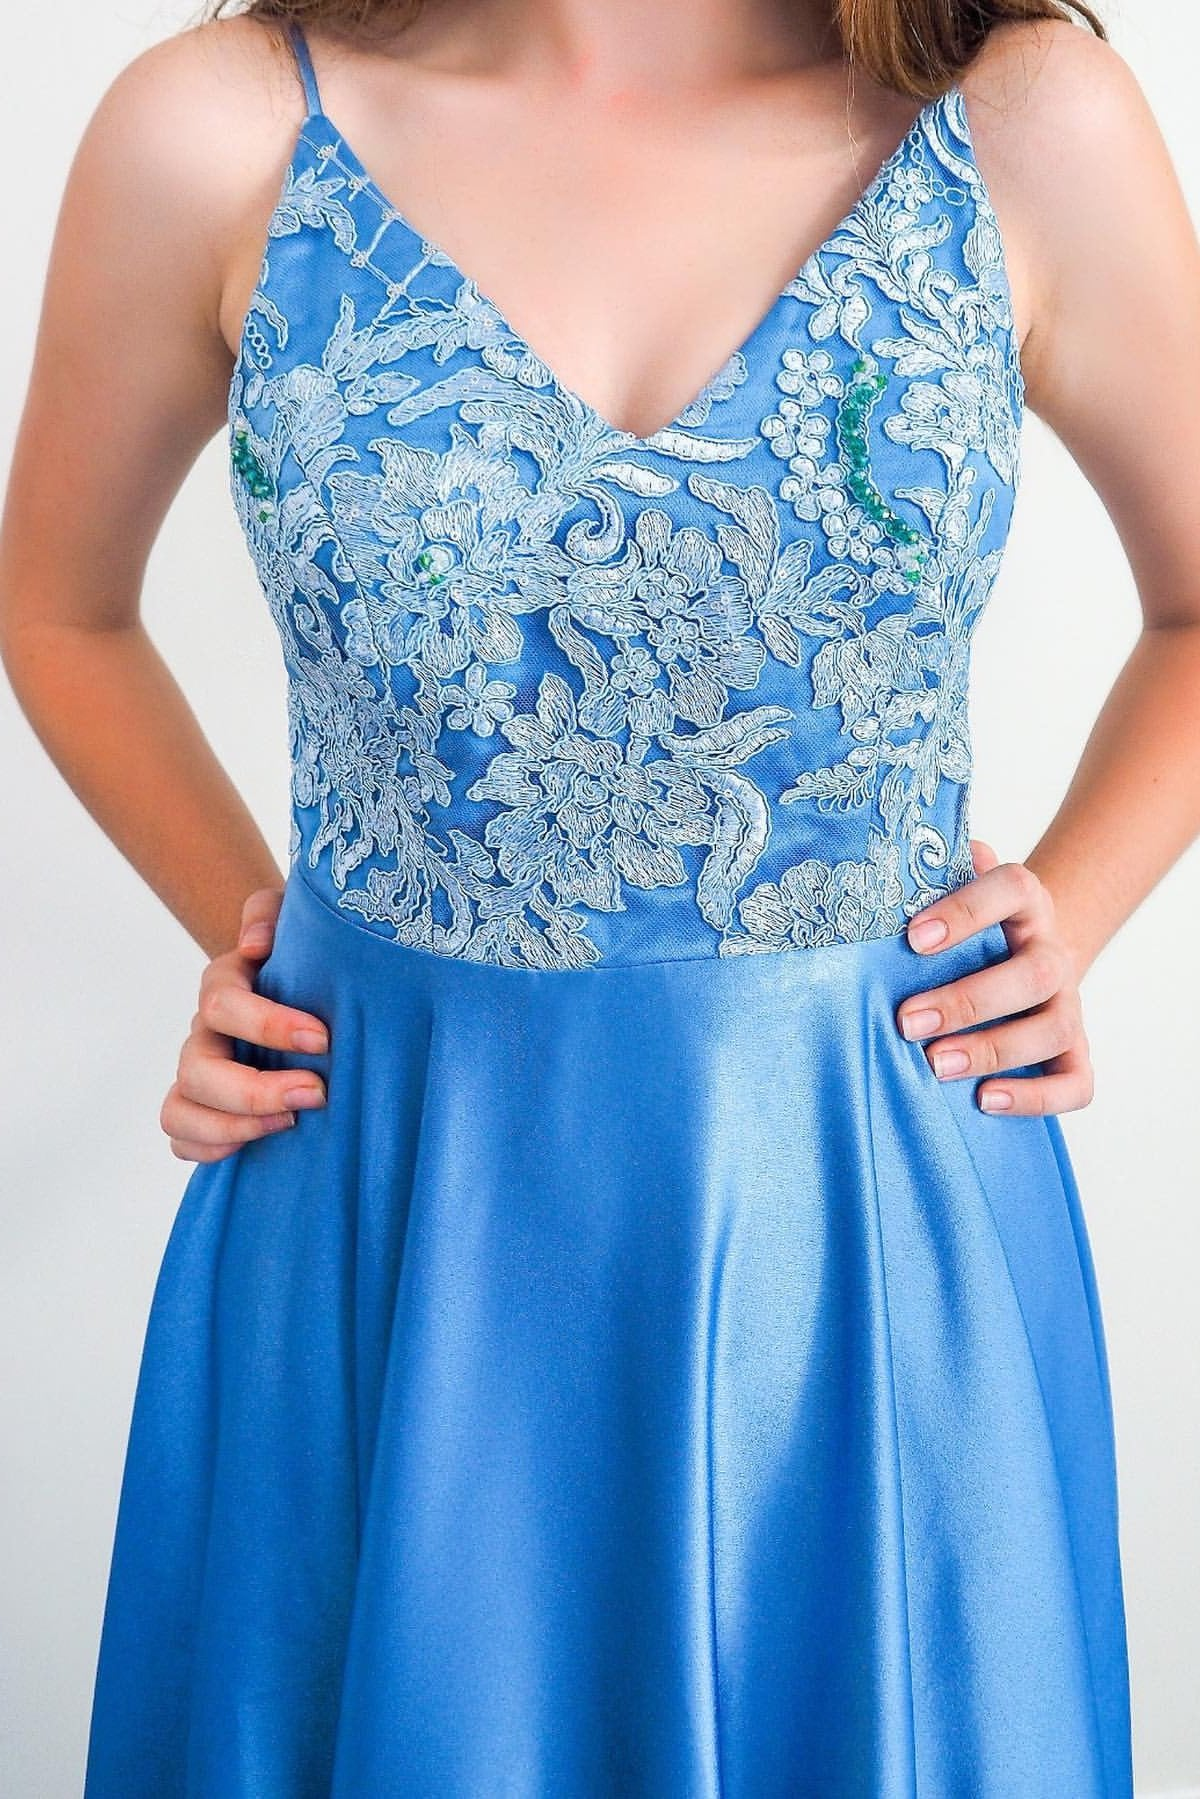 Ice Blue Backless Long Prom Dresses A-line Appliqued Formal Evening Dress MP79